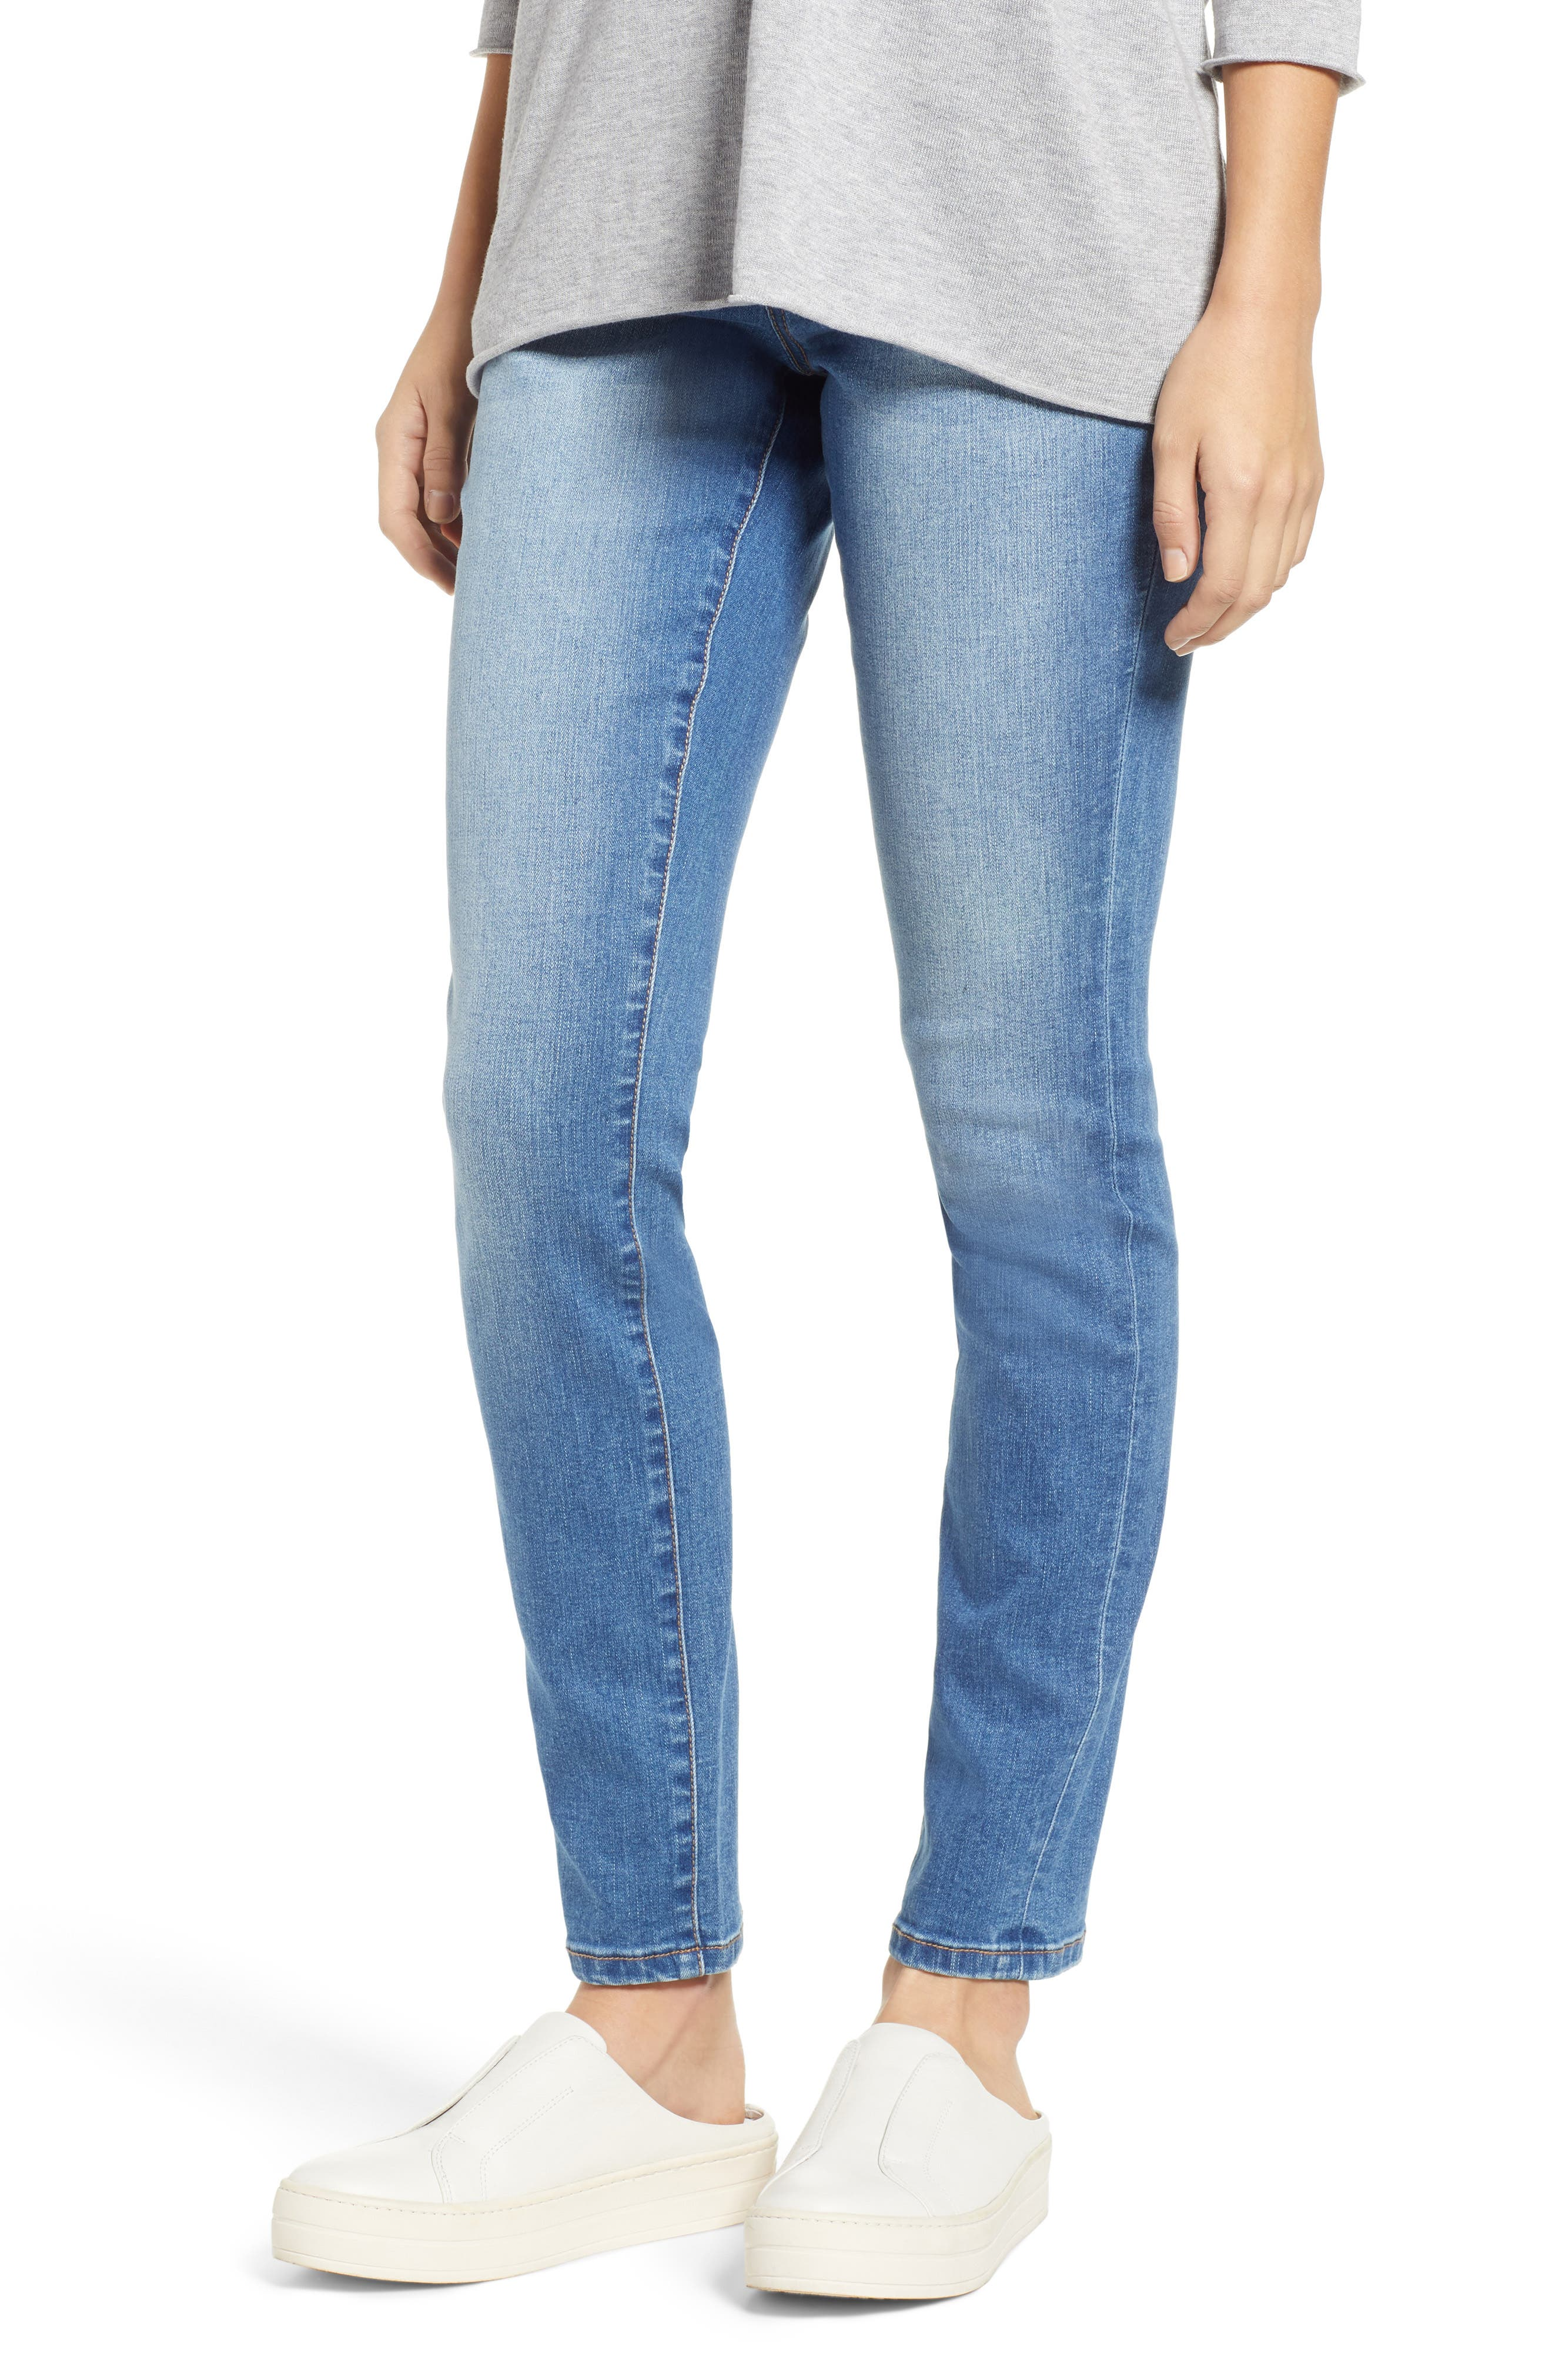 JAG JEANS Nora Pull-On Skinny Jeans in Authentic Blue